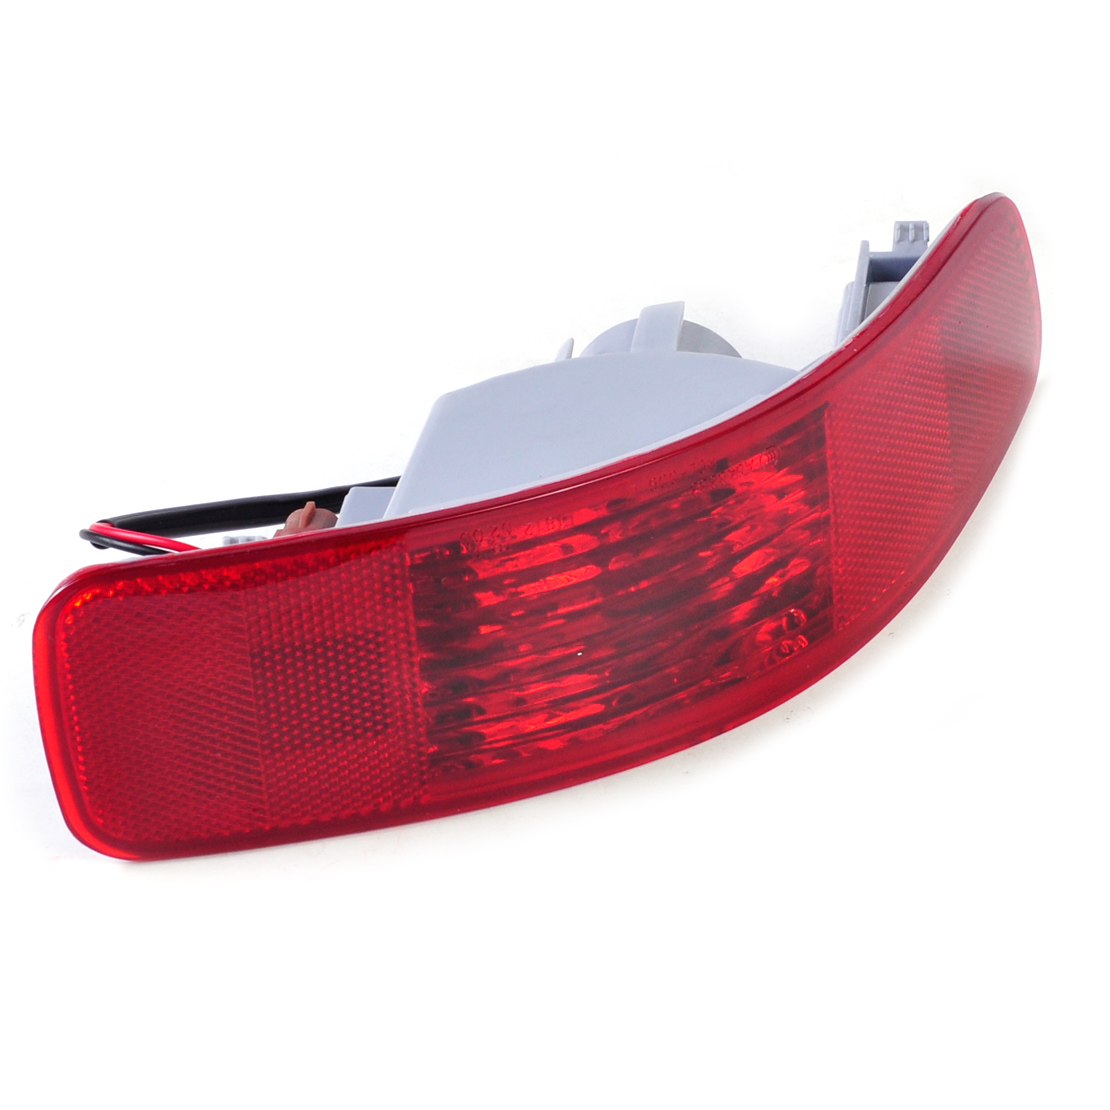 beler Rear Left Side Fog Light Bumper Lamp Reflector SL693-LH Fit for Mitsubishi Outlander 2007 2008 2009 2010 2011 2012 2013 free shipping for skoda octavia sedan a5 2005 2006 2007 2008 left side rear lamp tail light